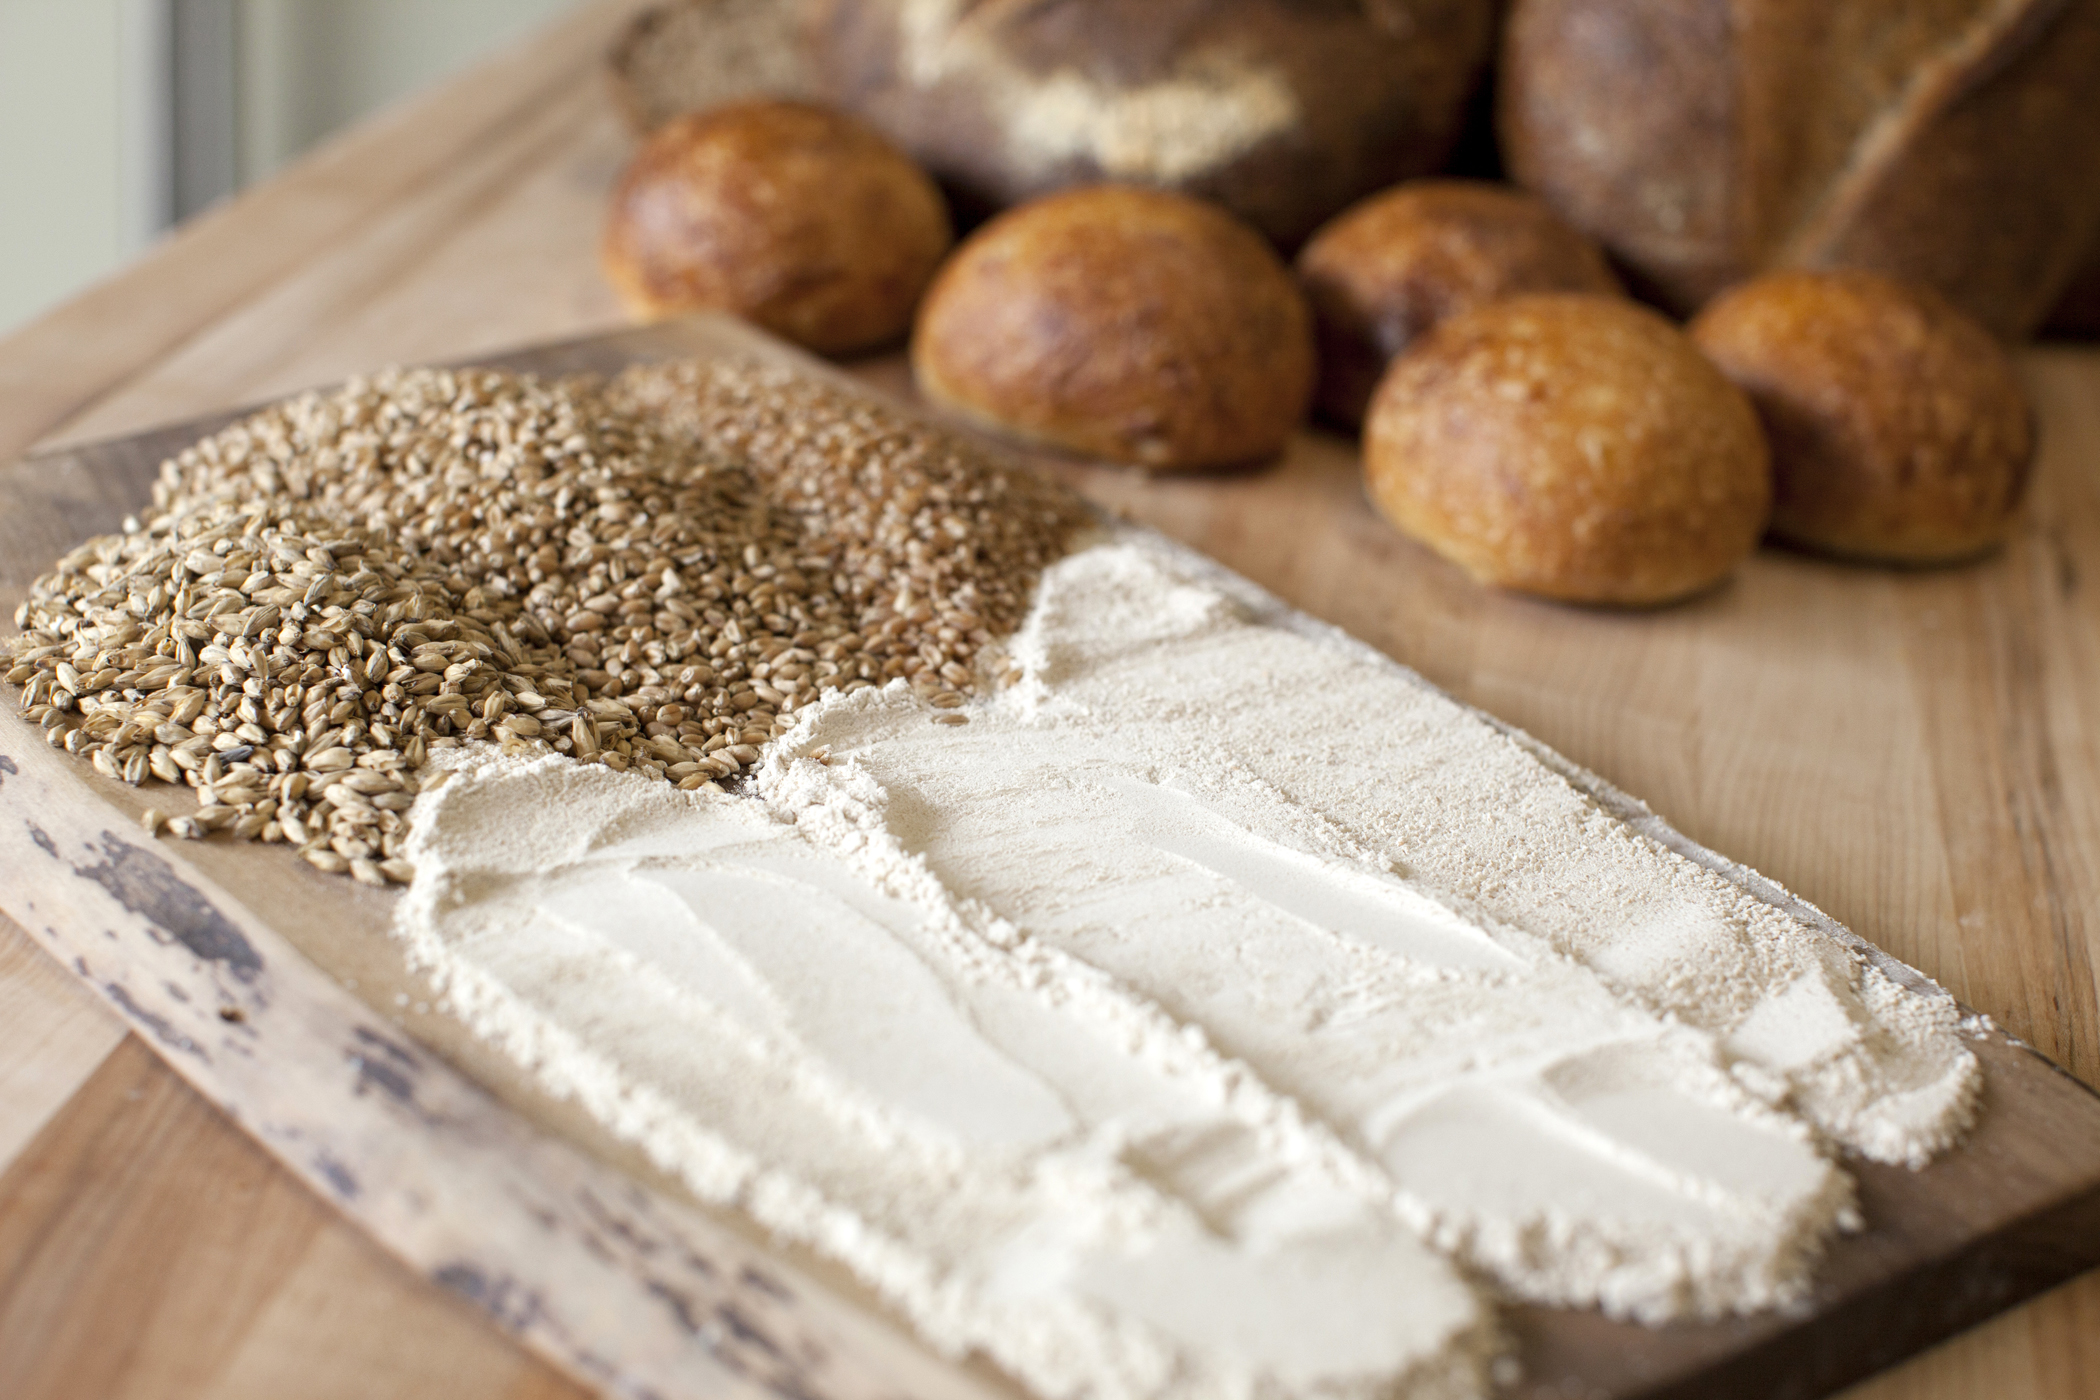 food photography of flour, grain and bread food building